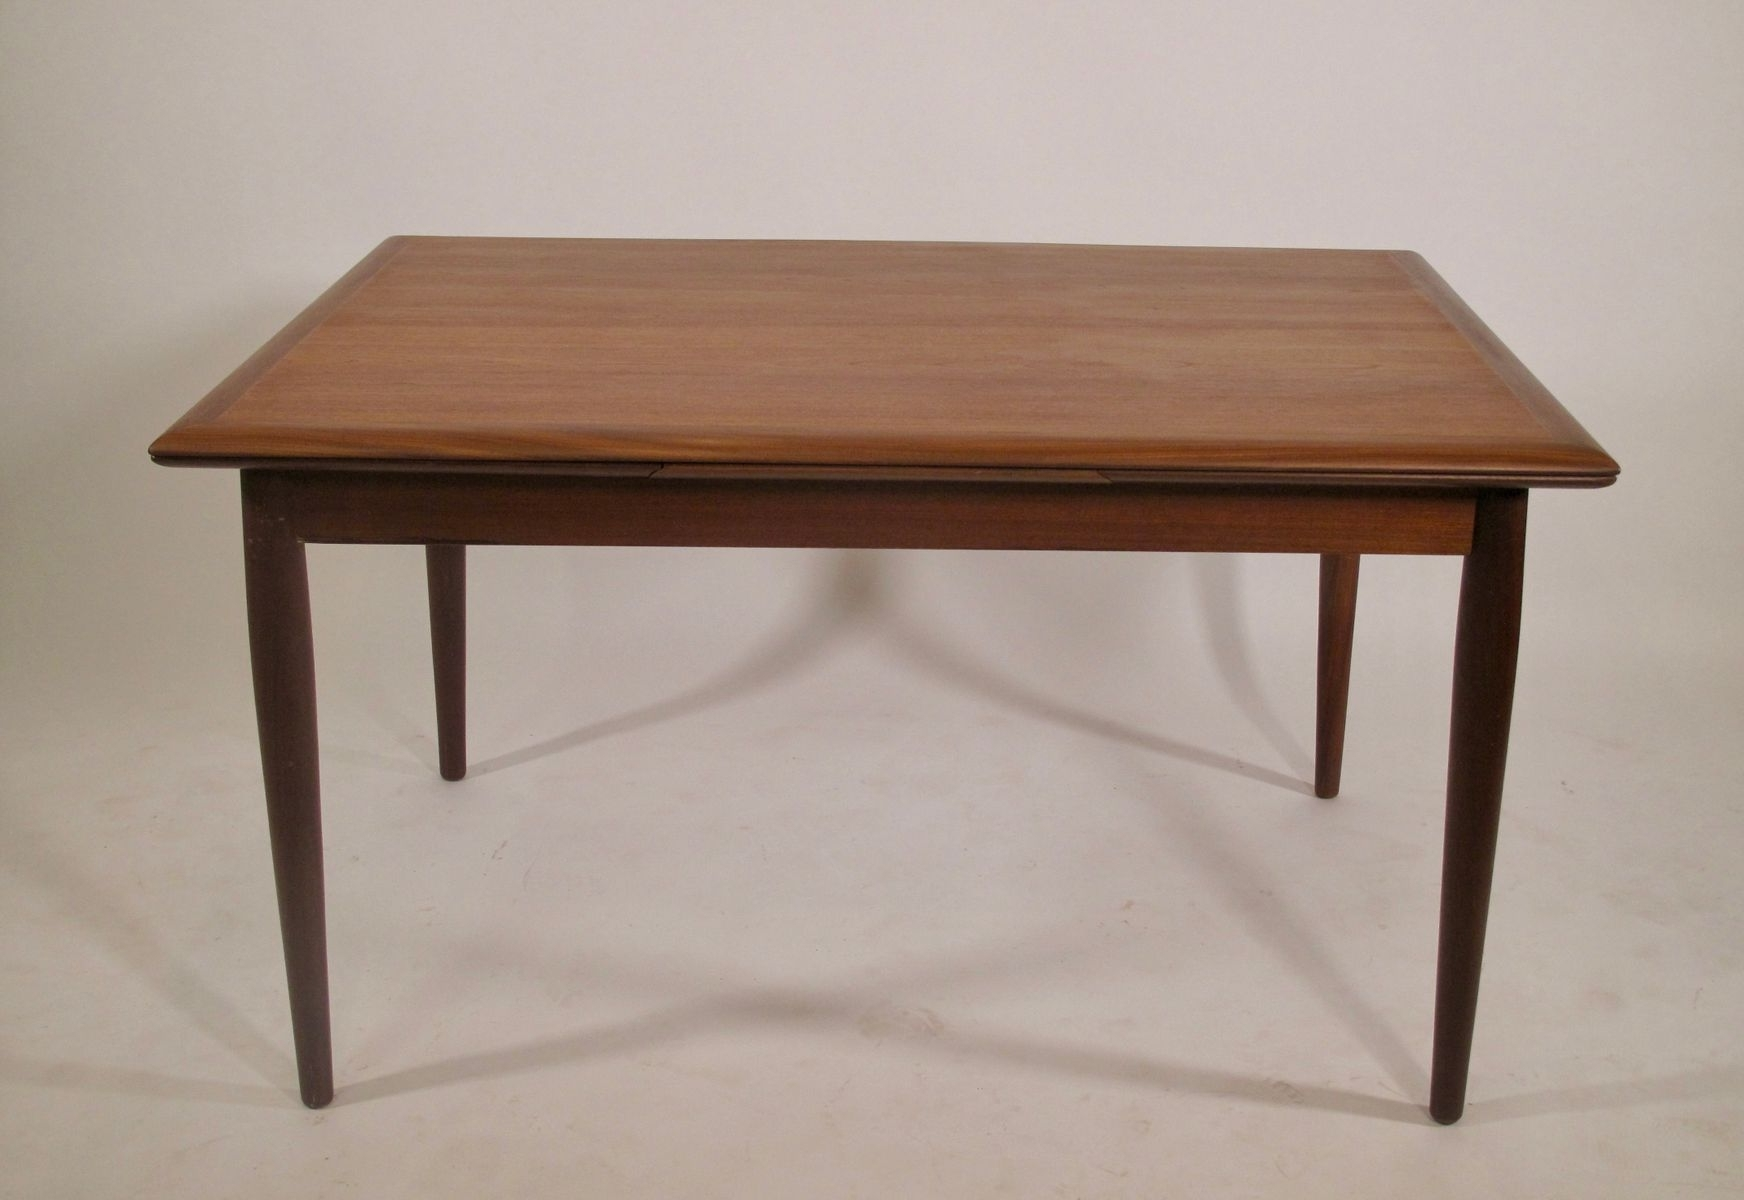 Teak Danish Dining Table, 1960S For Sale At Pamono Within 2018 Danish Dining Tables (View 11 of 25)